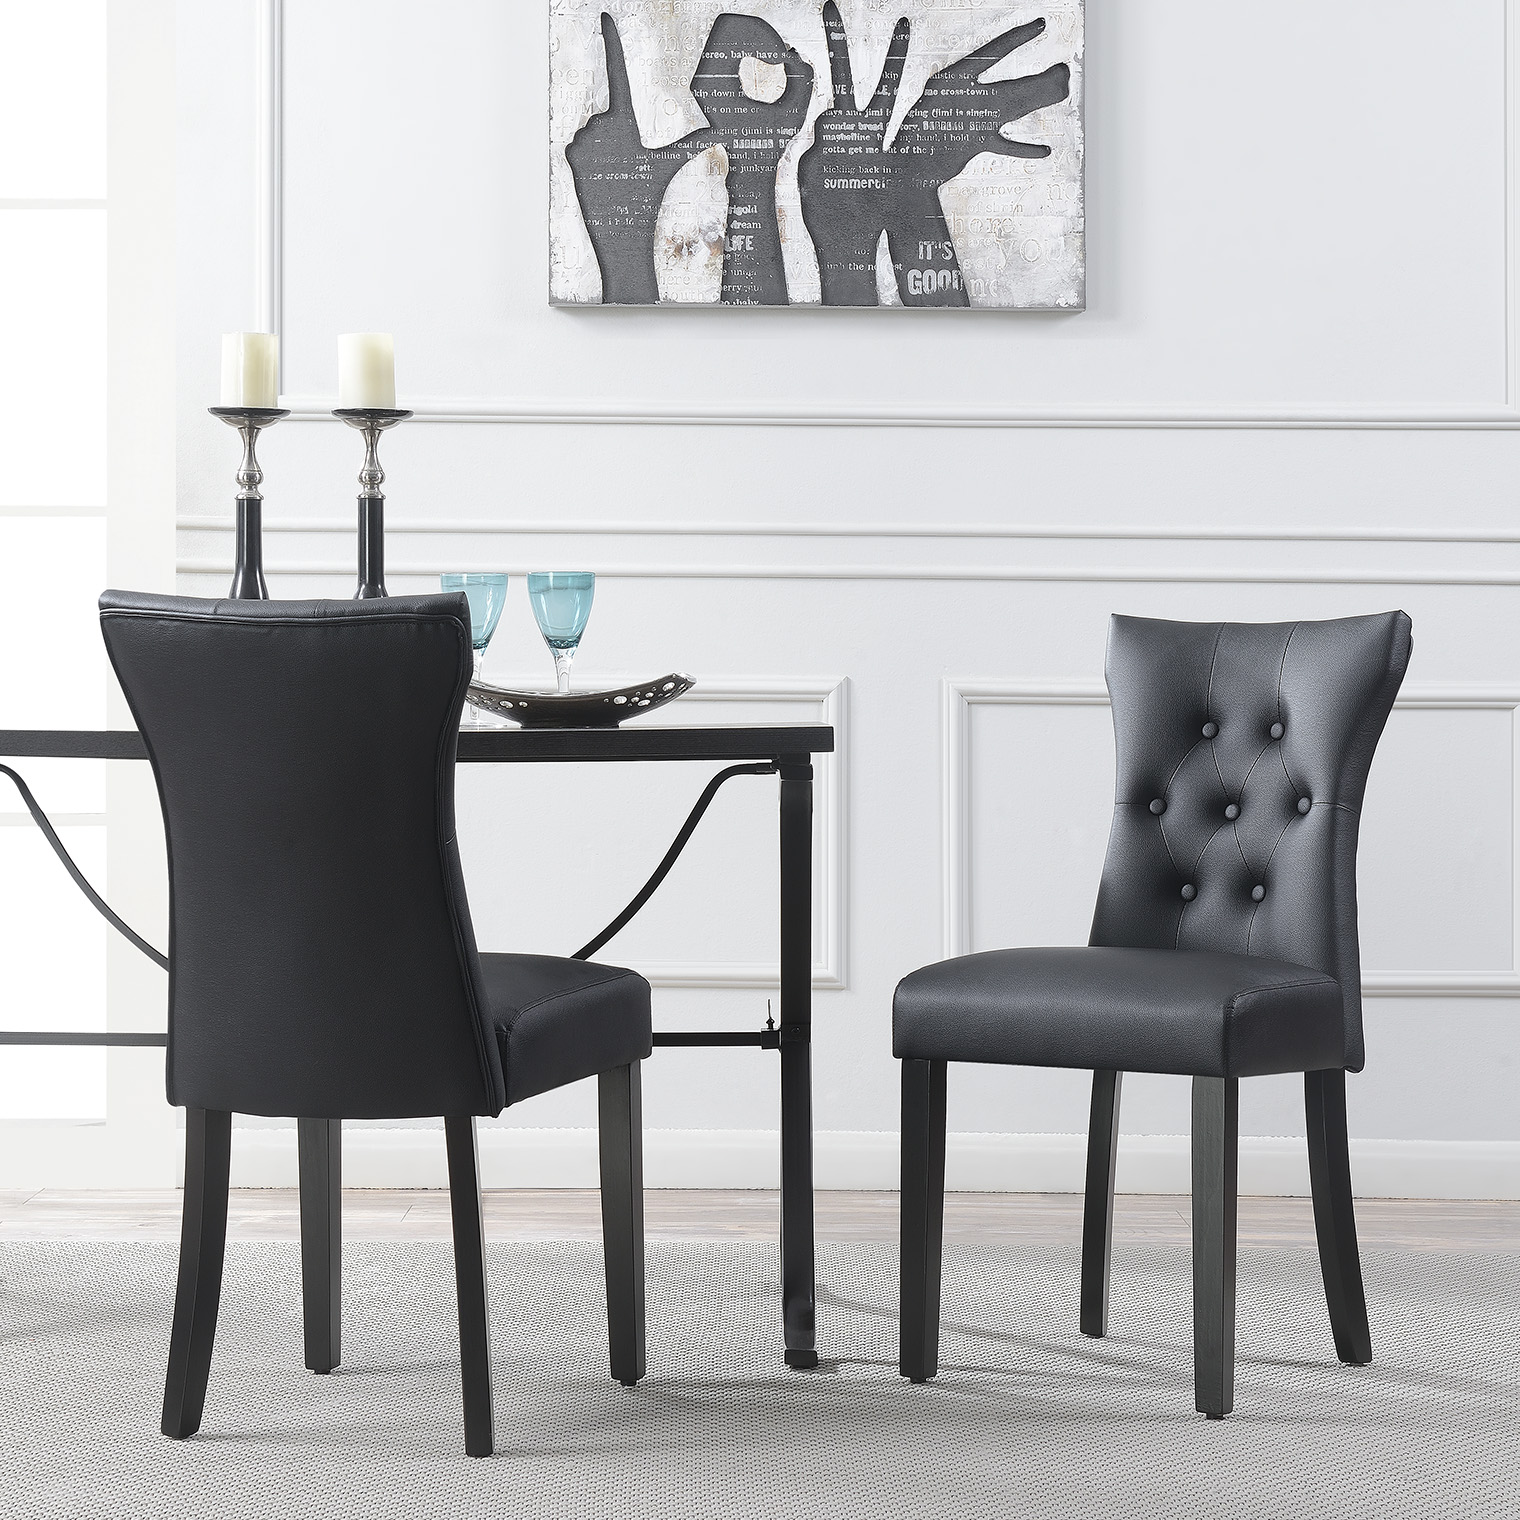 Leather Dining Chairs With Nailheads Set Of 2 Modern Dining Chair Faux Leather Nailhead